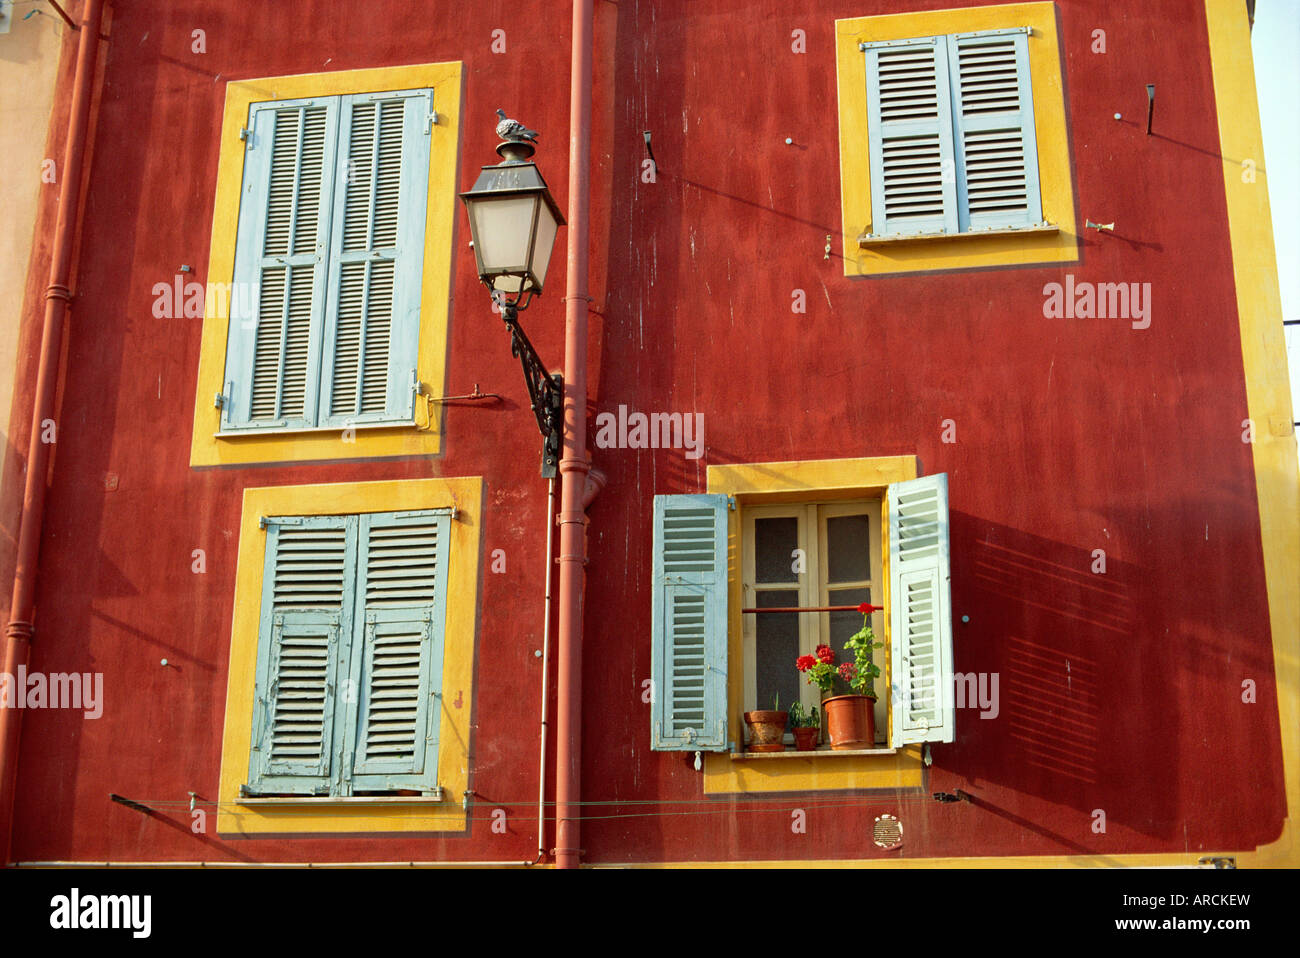 Shuttered windows in the old town, Nice, Provence, France - Stock Image